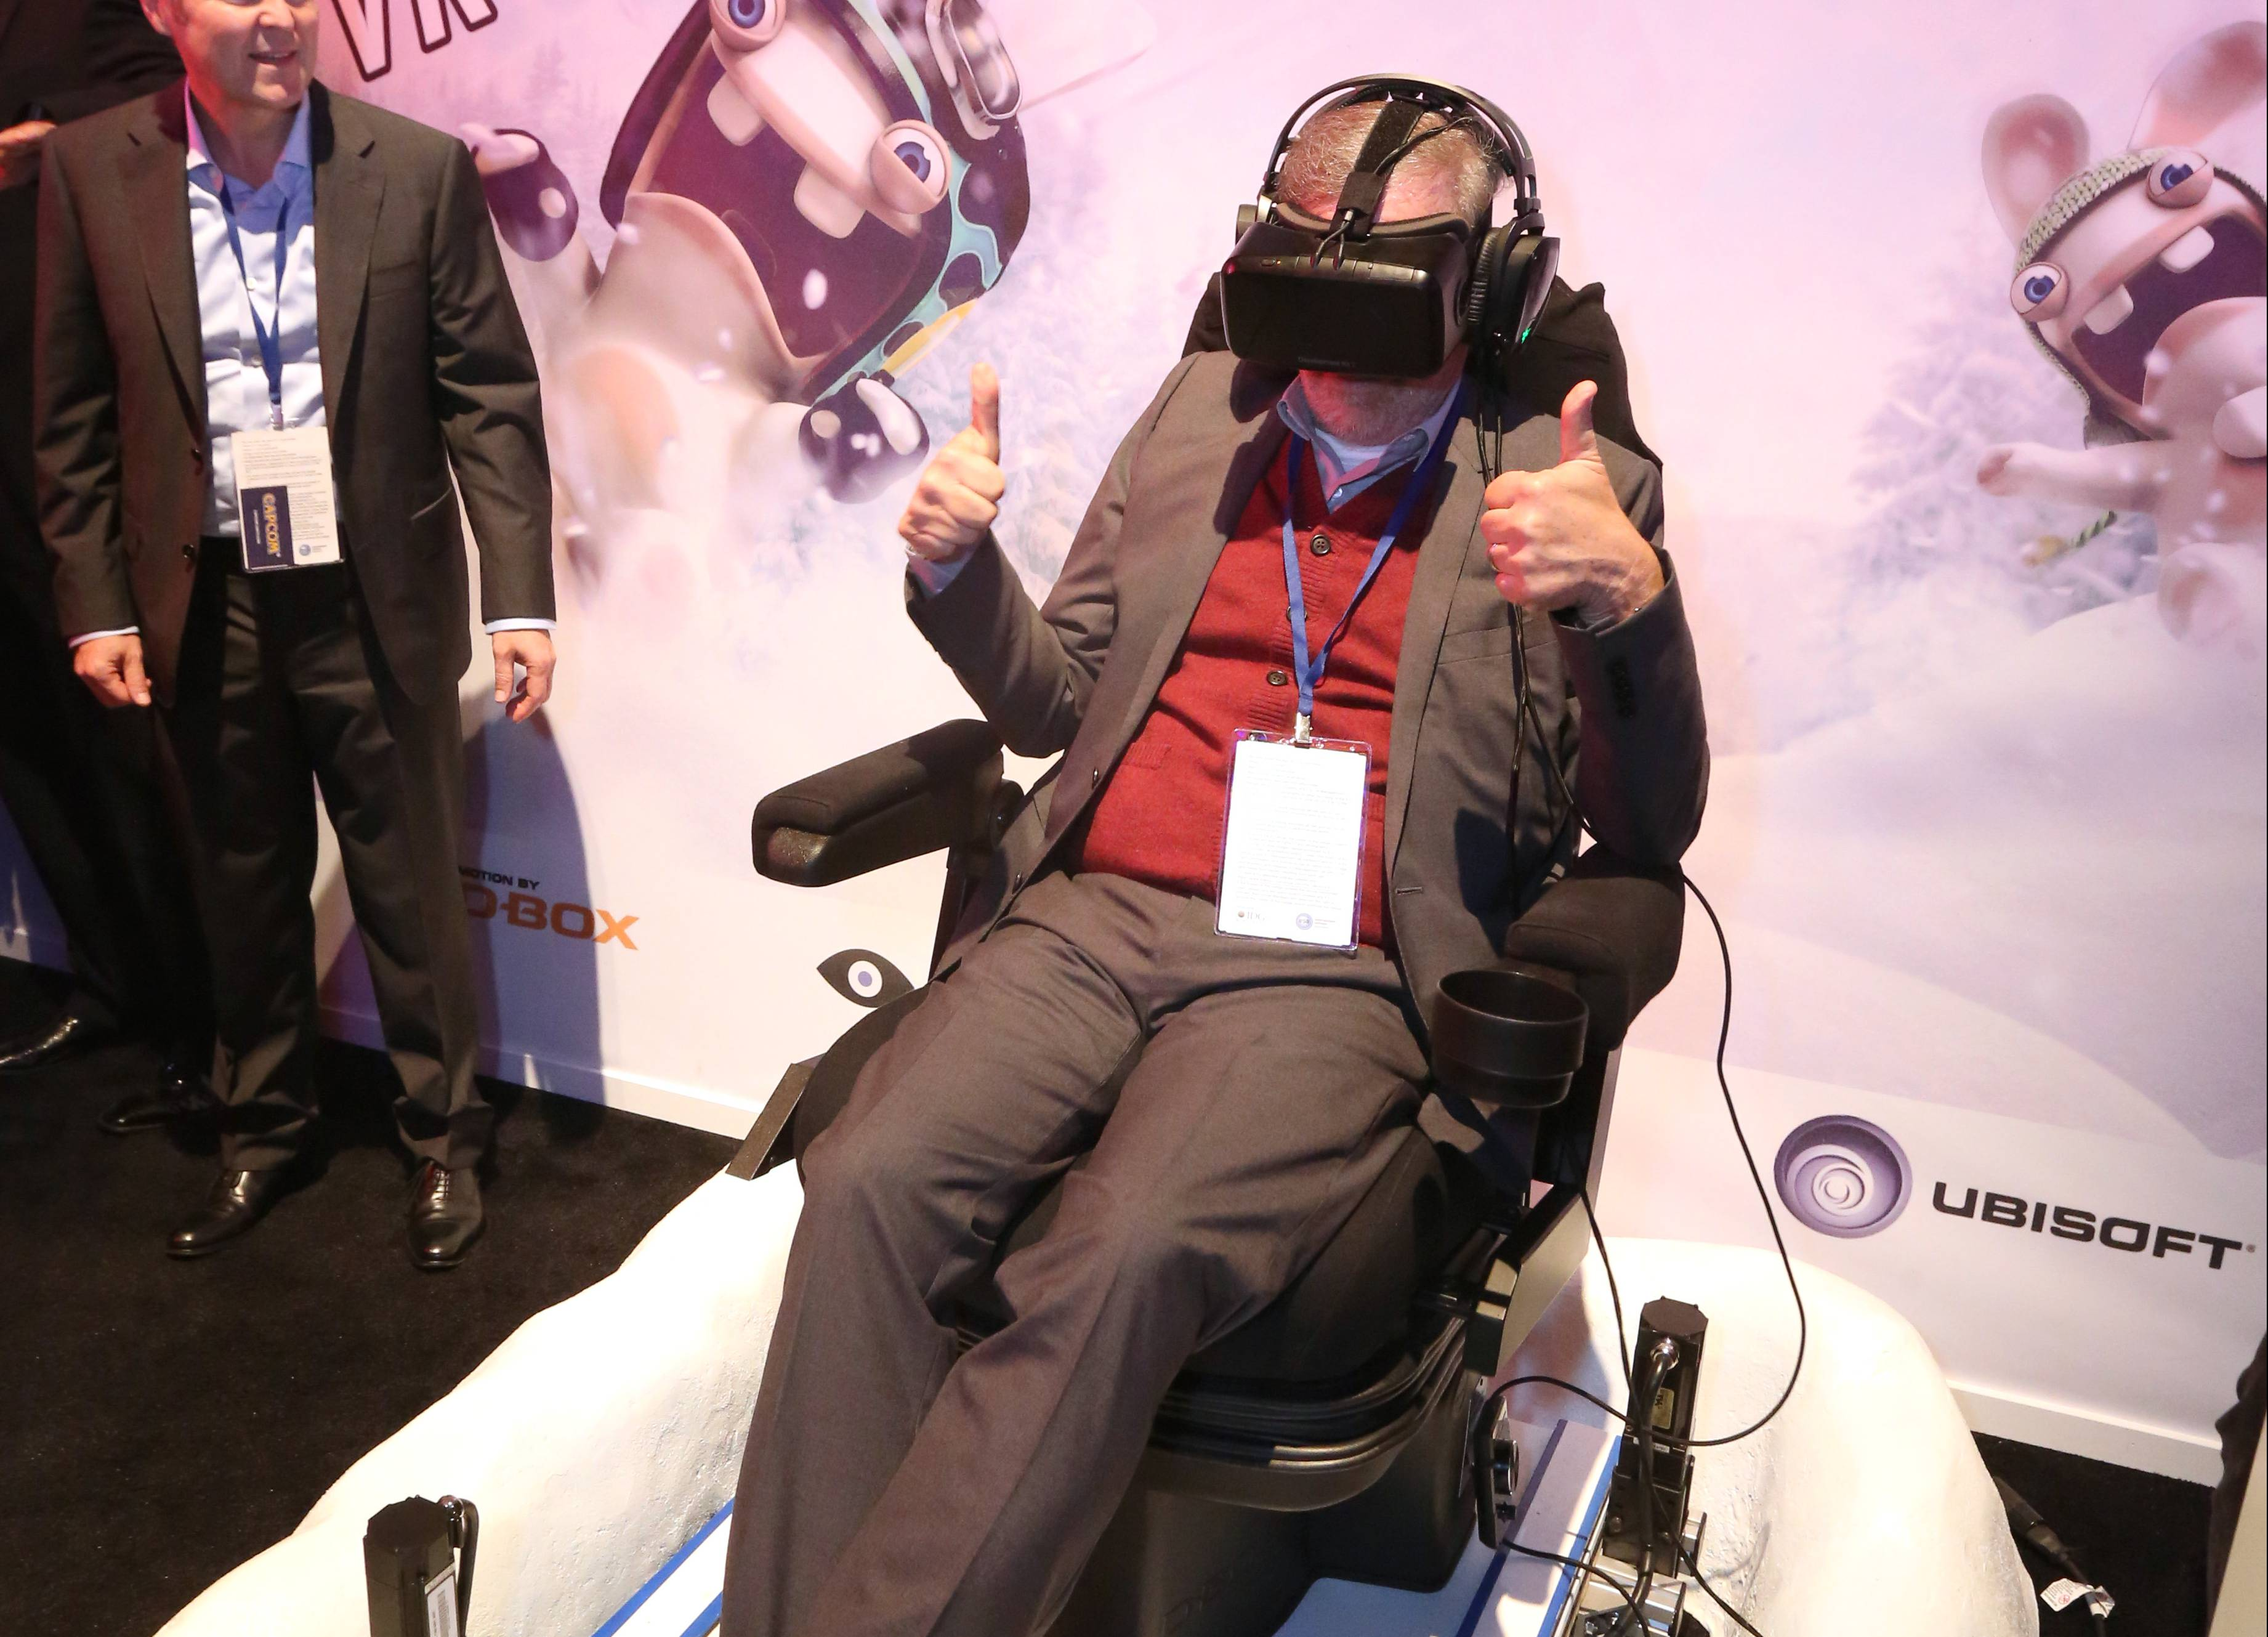 Steven Spielberg plays Rabbids VR Ride at the Ubisoft booth at E3 2015